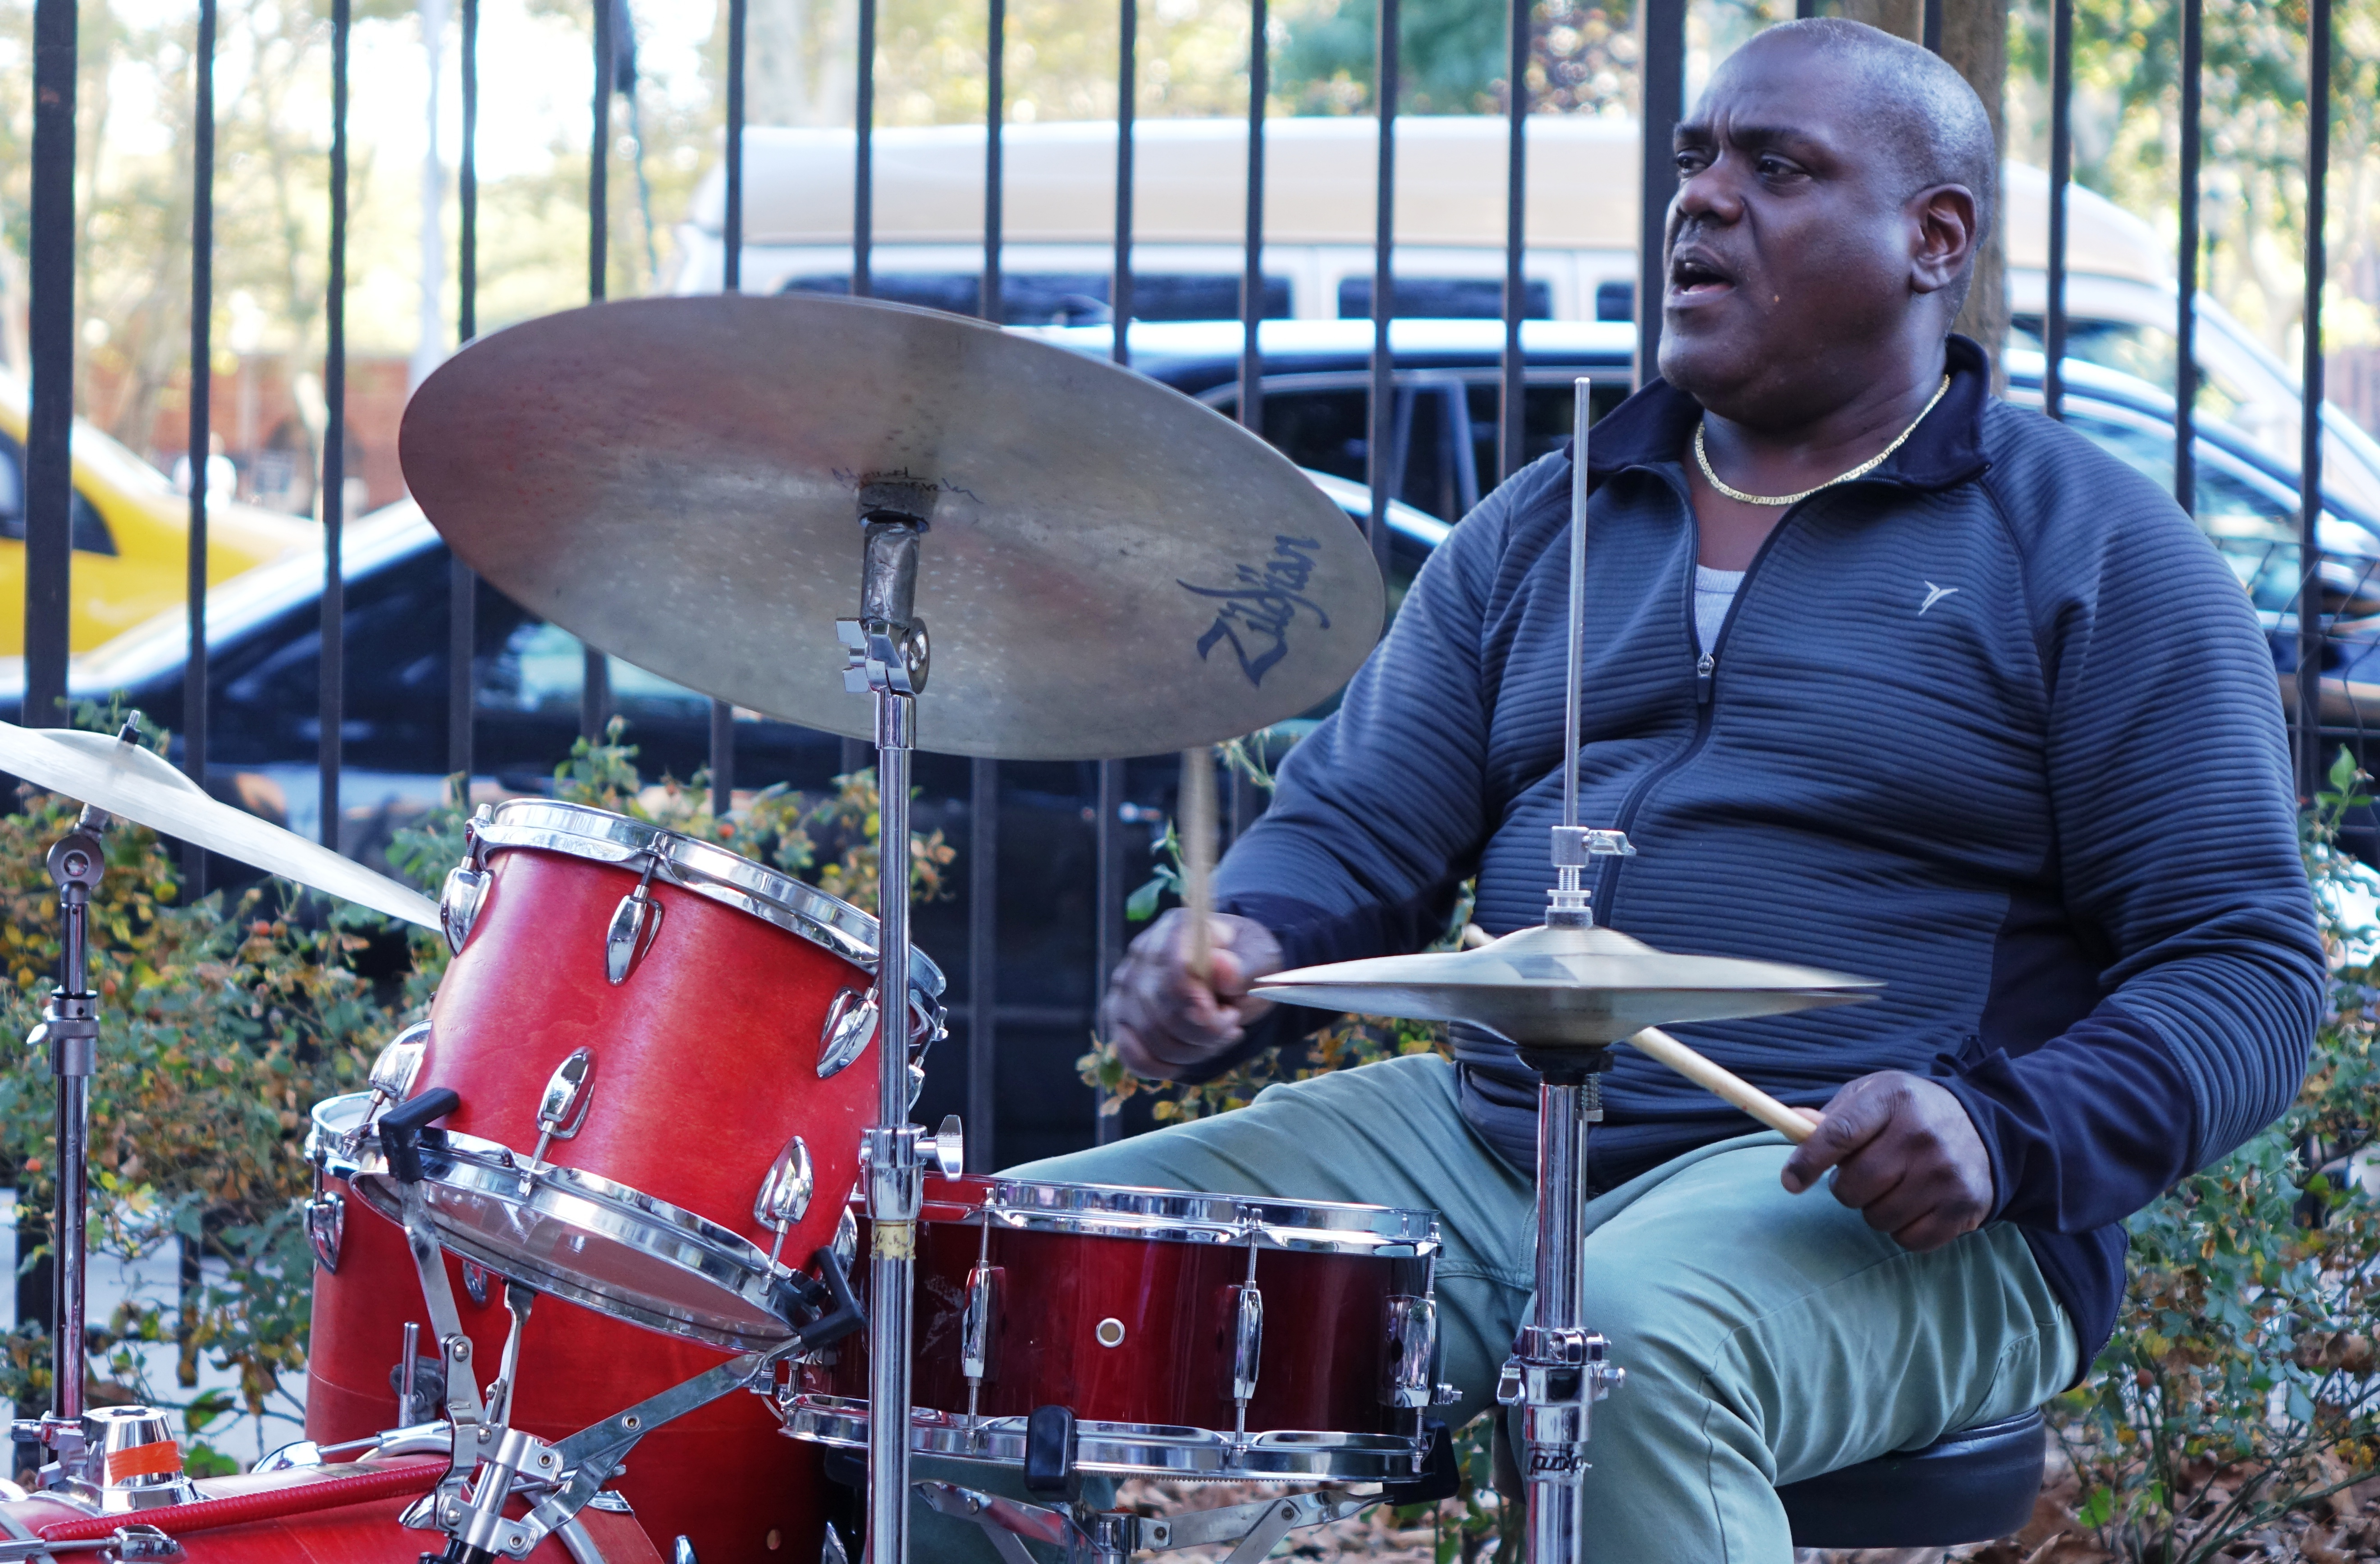 Michael Wimberly at First Street Green, NYC in October 2017